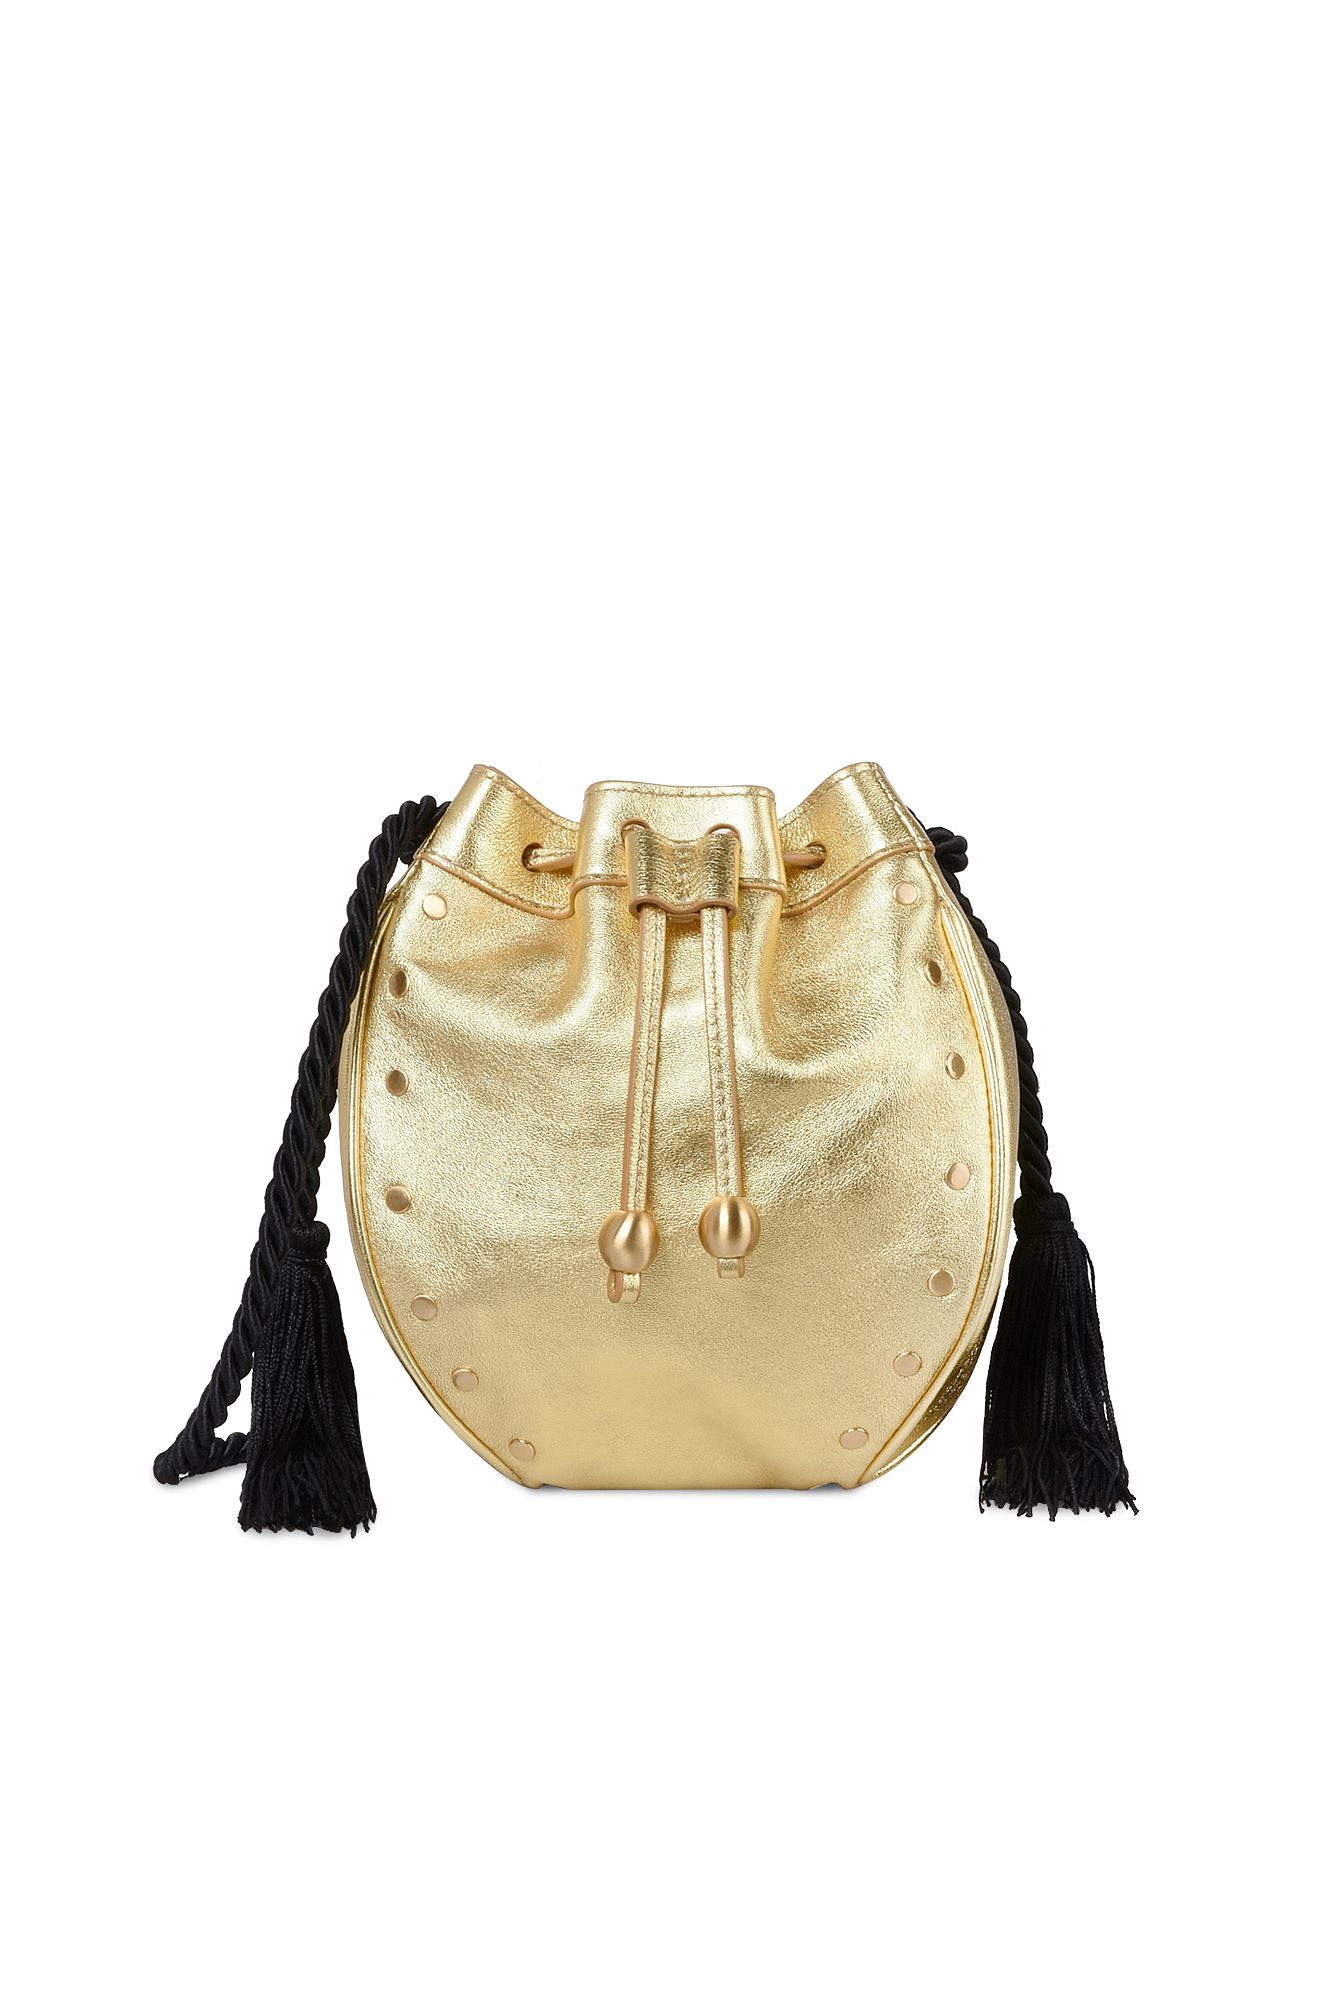 Gold Melody bag